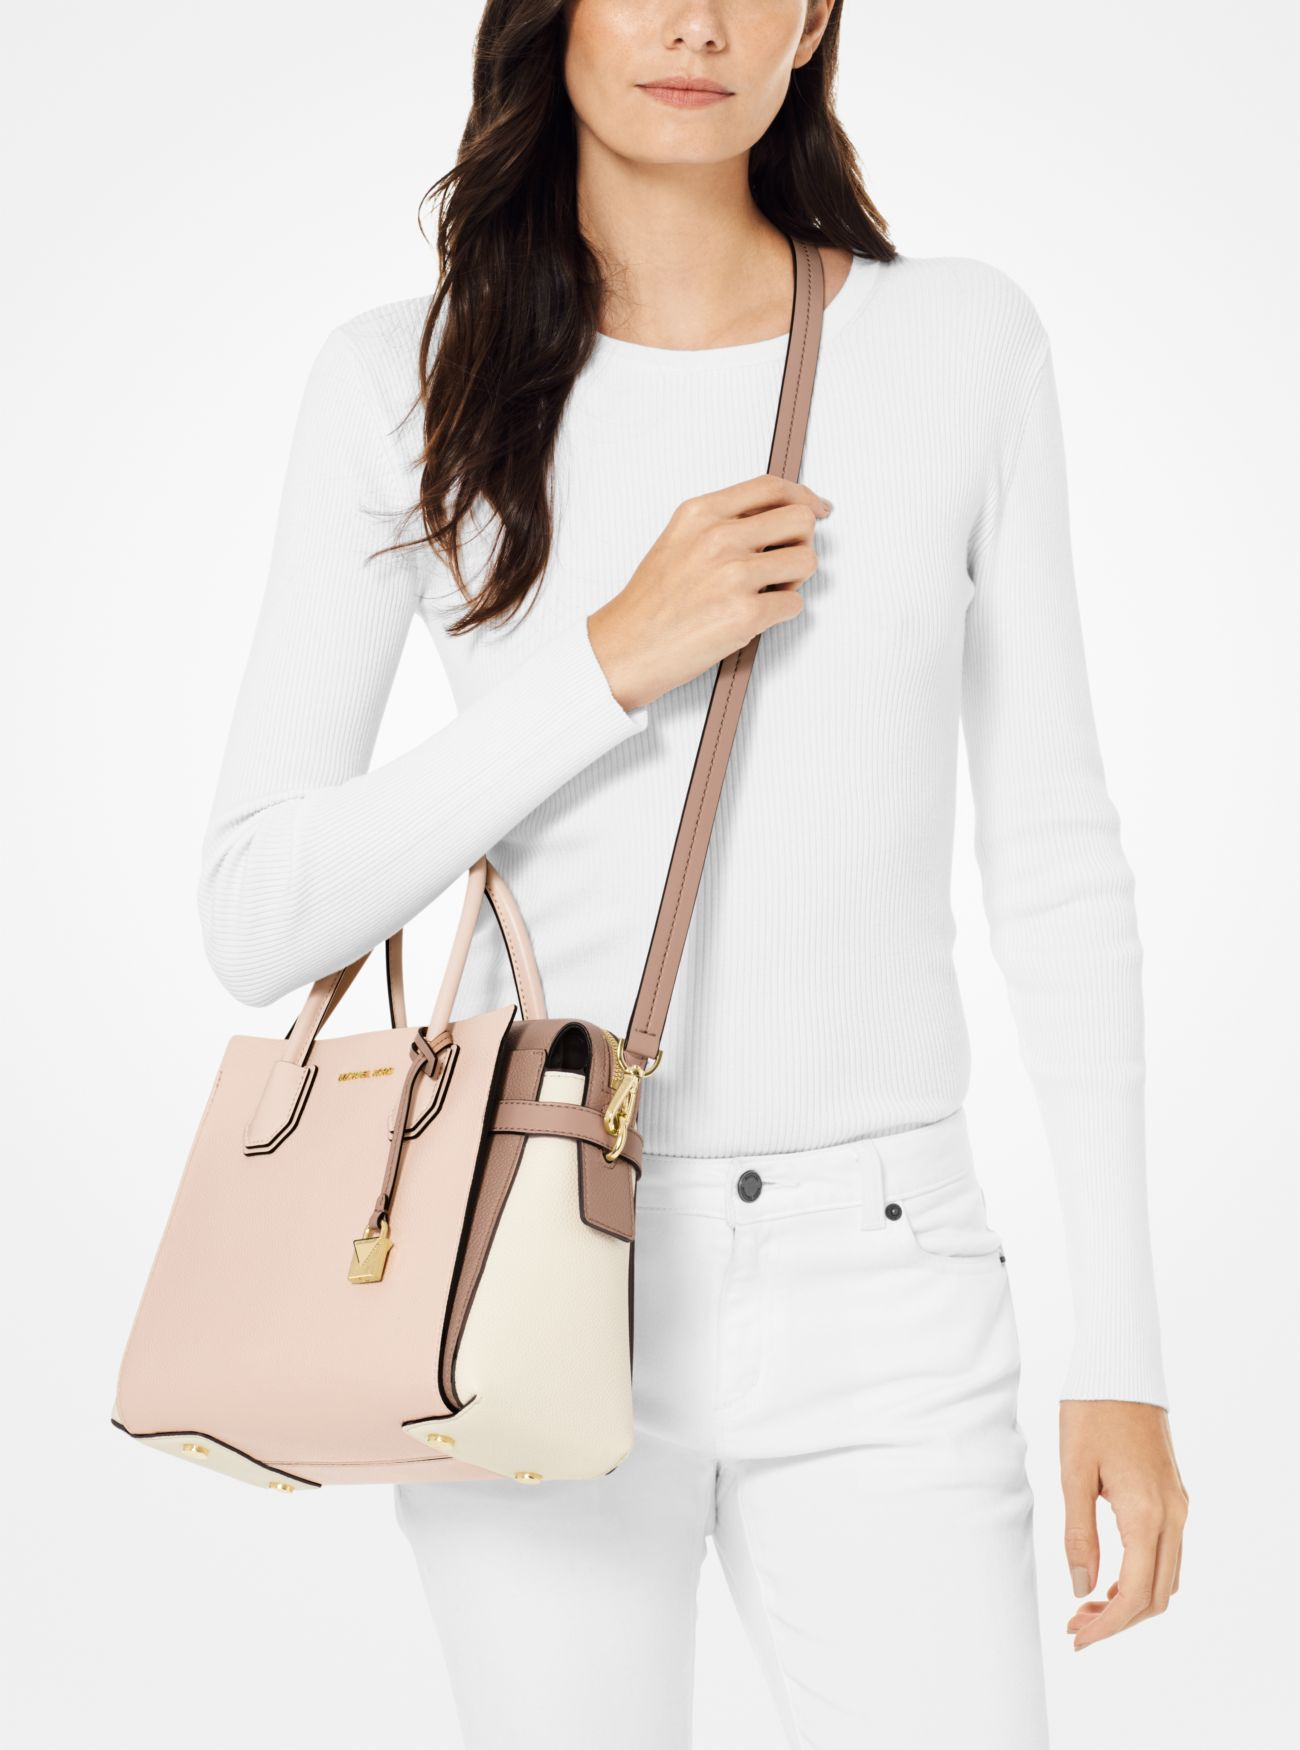 bc9456c1 ... Mercer Medium Tri-Color Pebbled Leather Belted Satchel Mercer Medium  Tri-Color Pebbled Leather Belted Satchel. MICHAEL Michael Kors